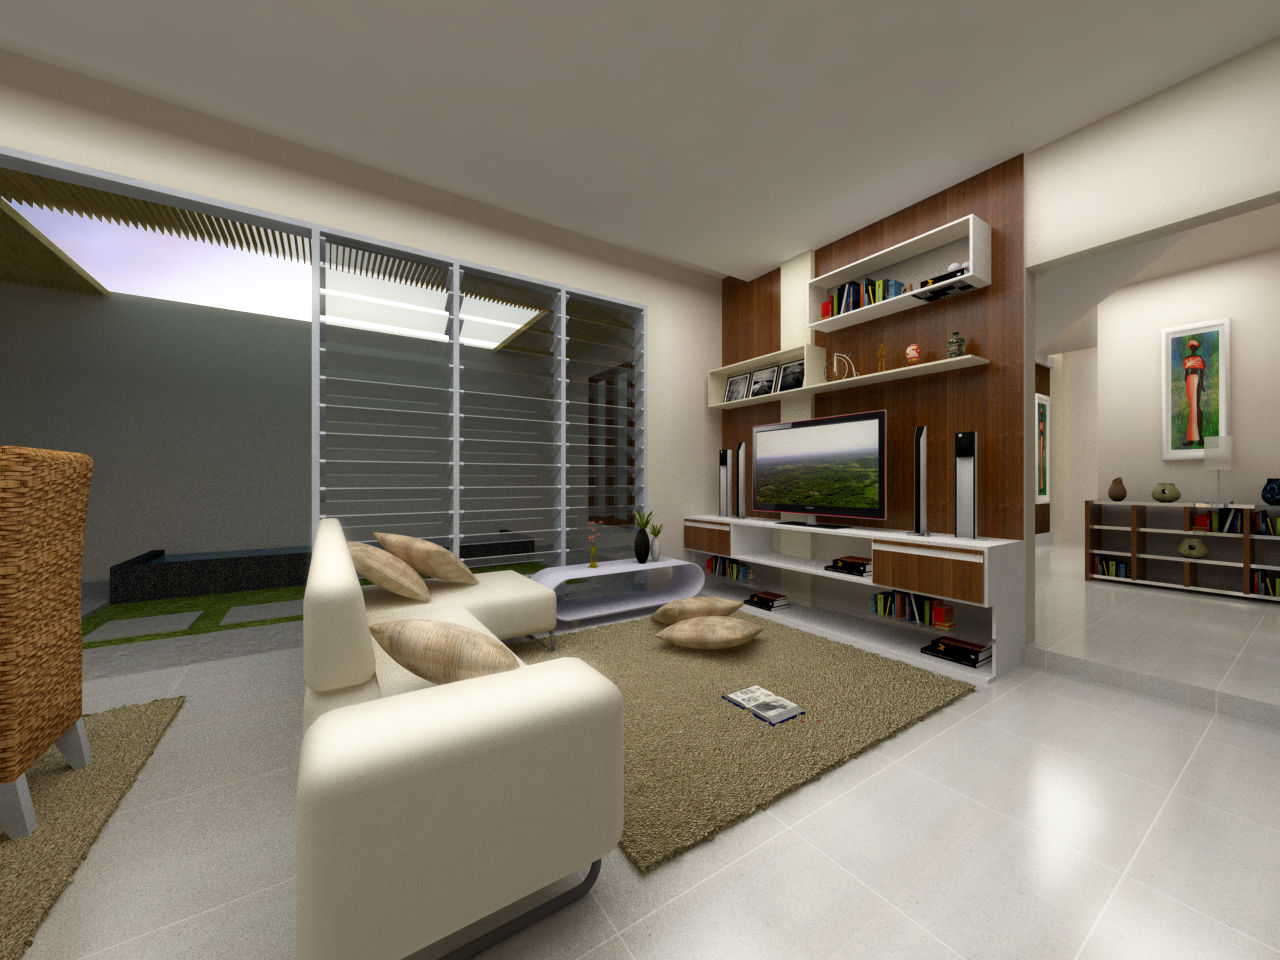 interior project interior house in lampung past design